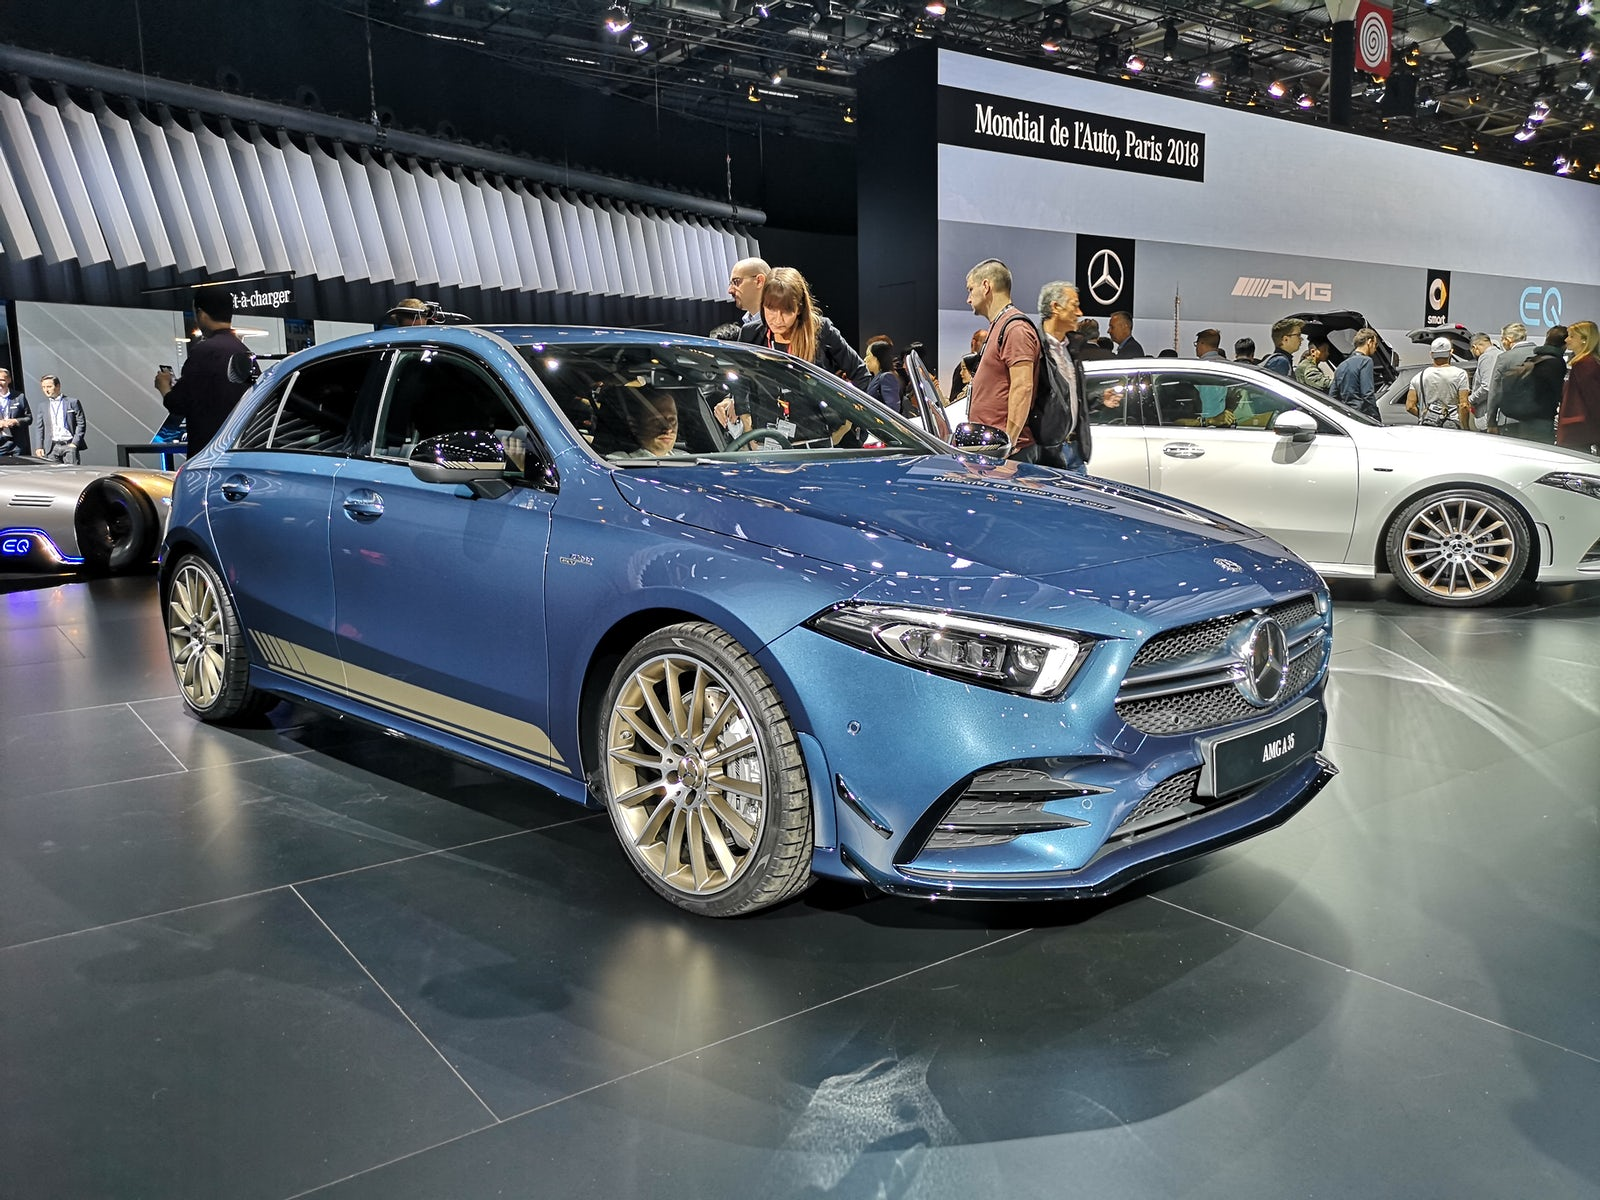 Paris Motor Show Carwow - Unique tin car show 2018